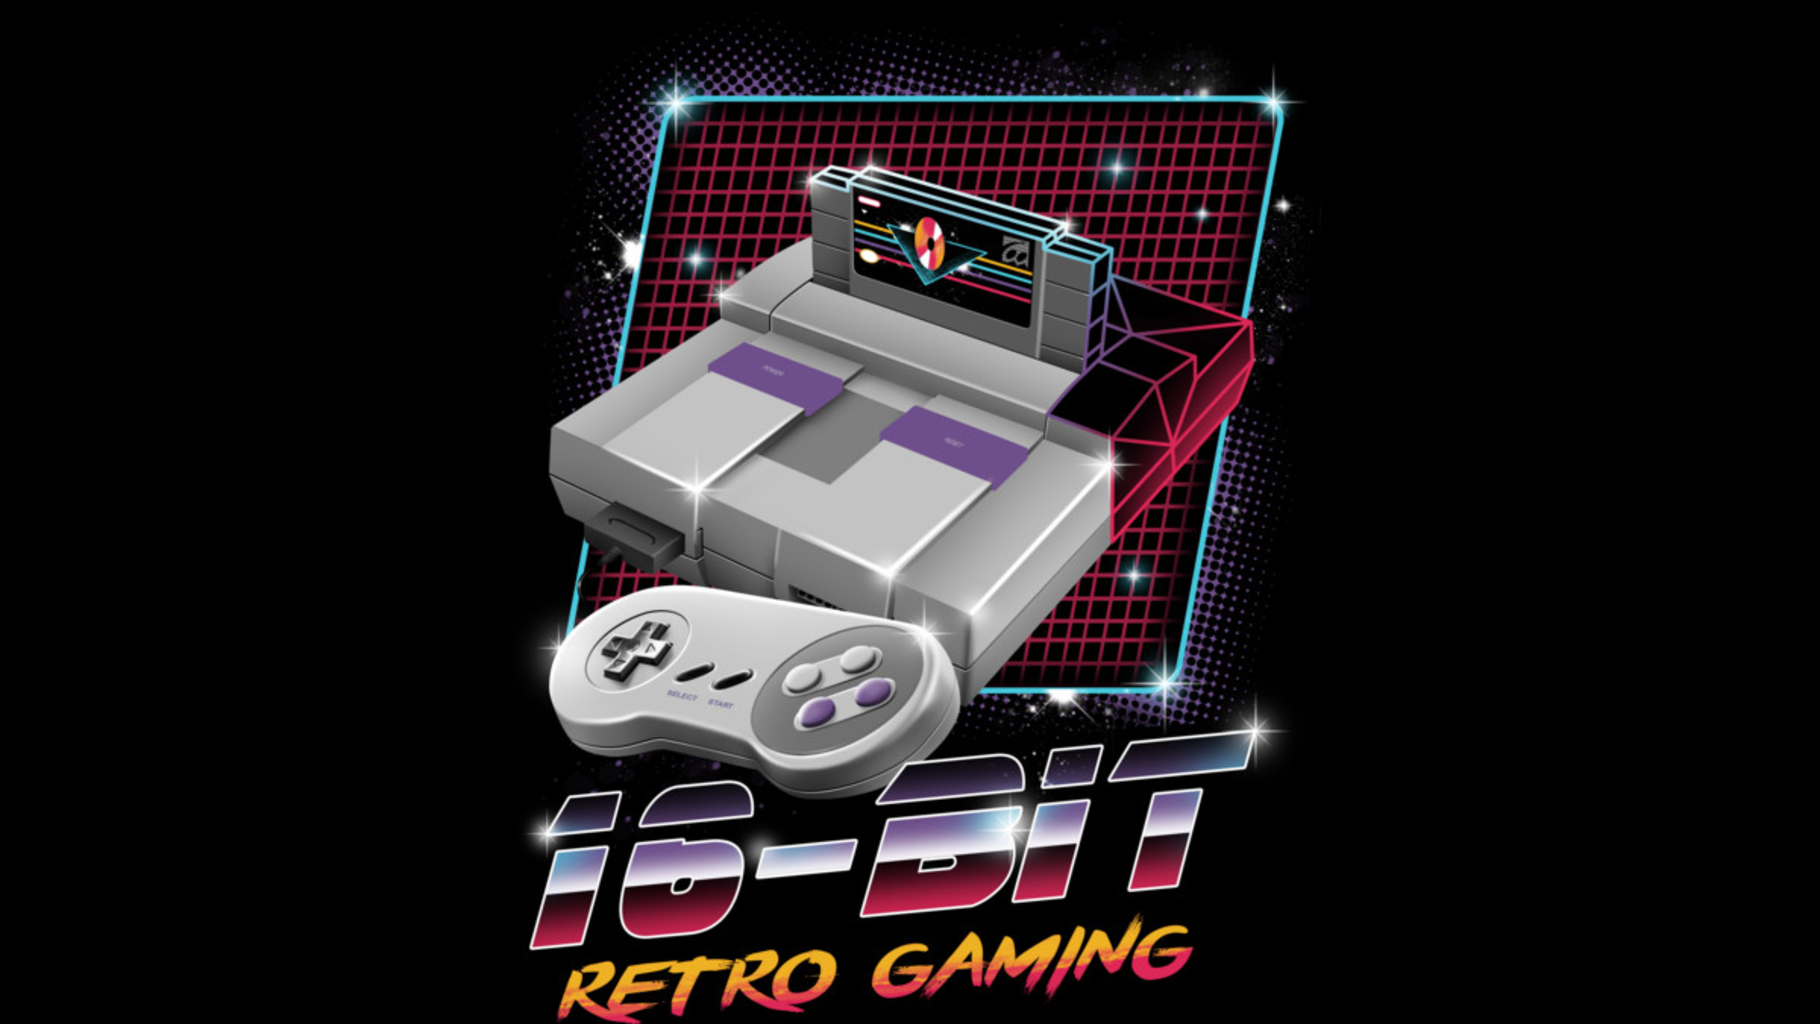 Design by Humans: 16-Bit Retro Gaming